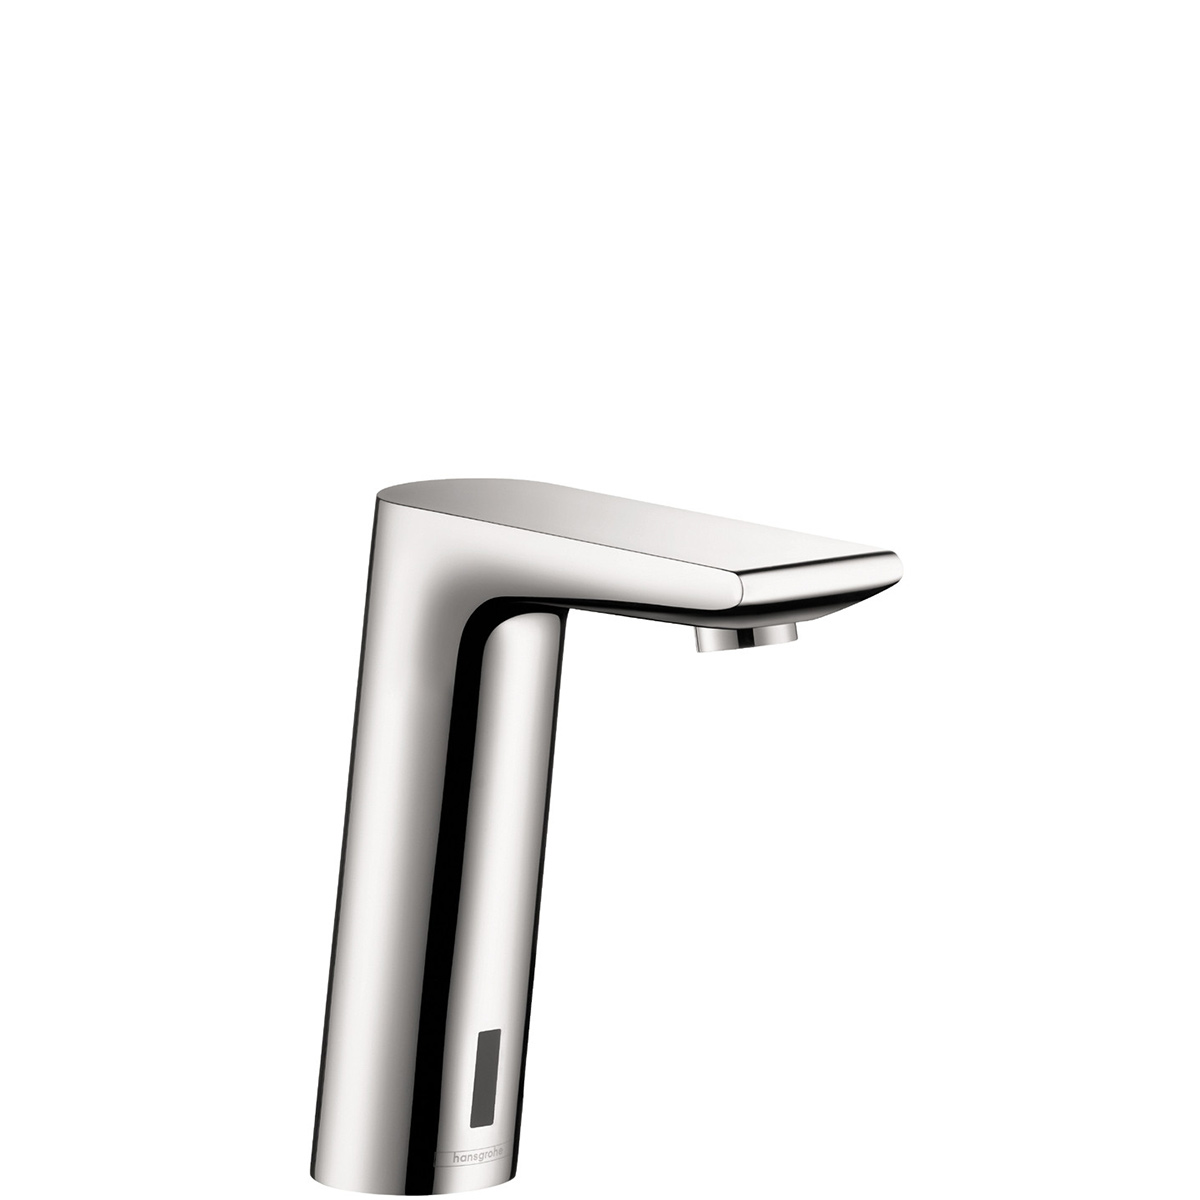 Bath4All - Hansgrohe 31101001 Chrome Metris S Bathroom Faucet Single ...